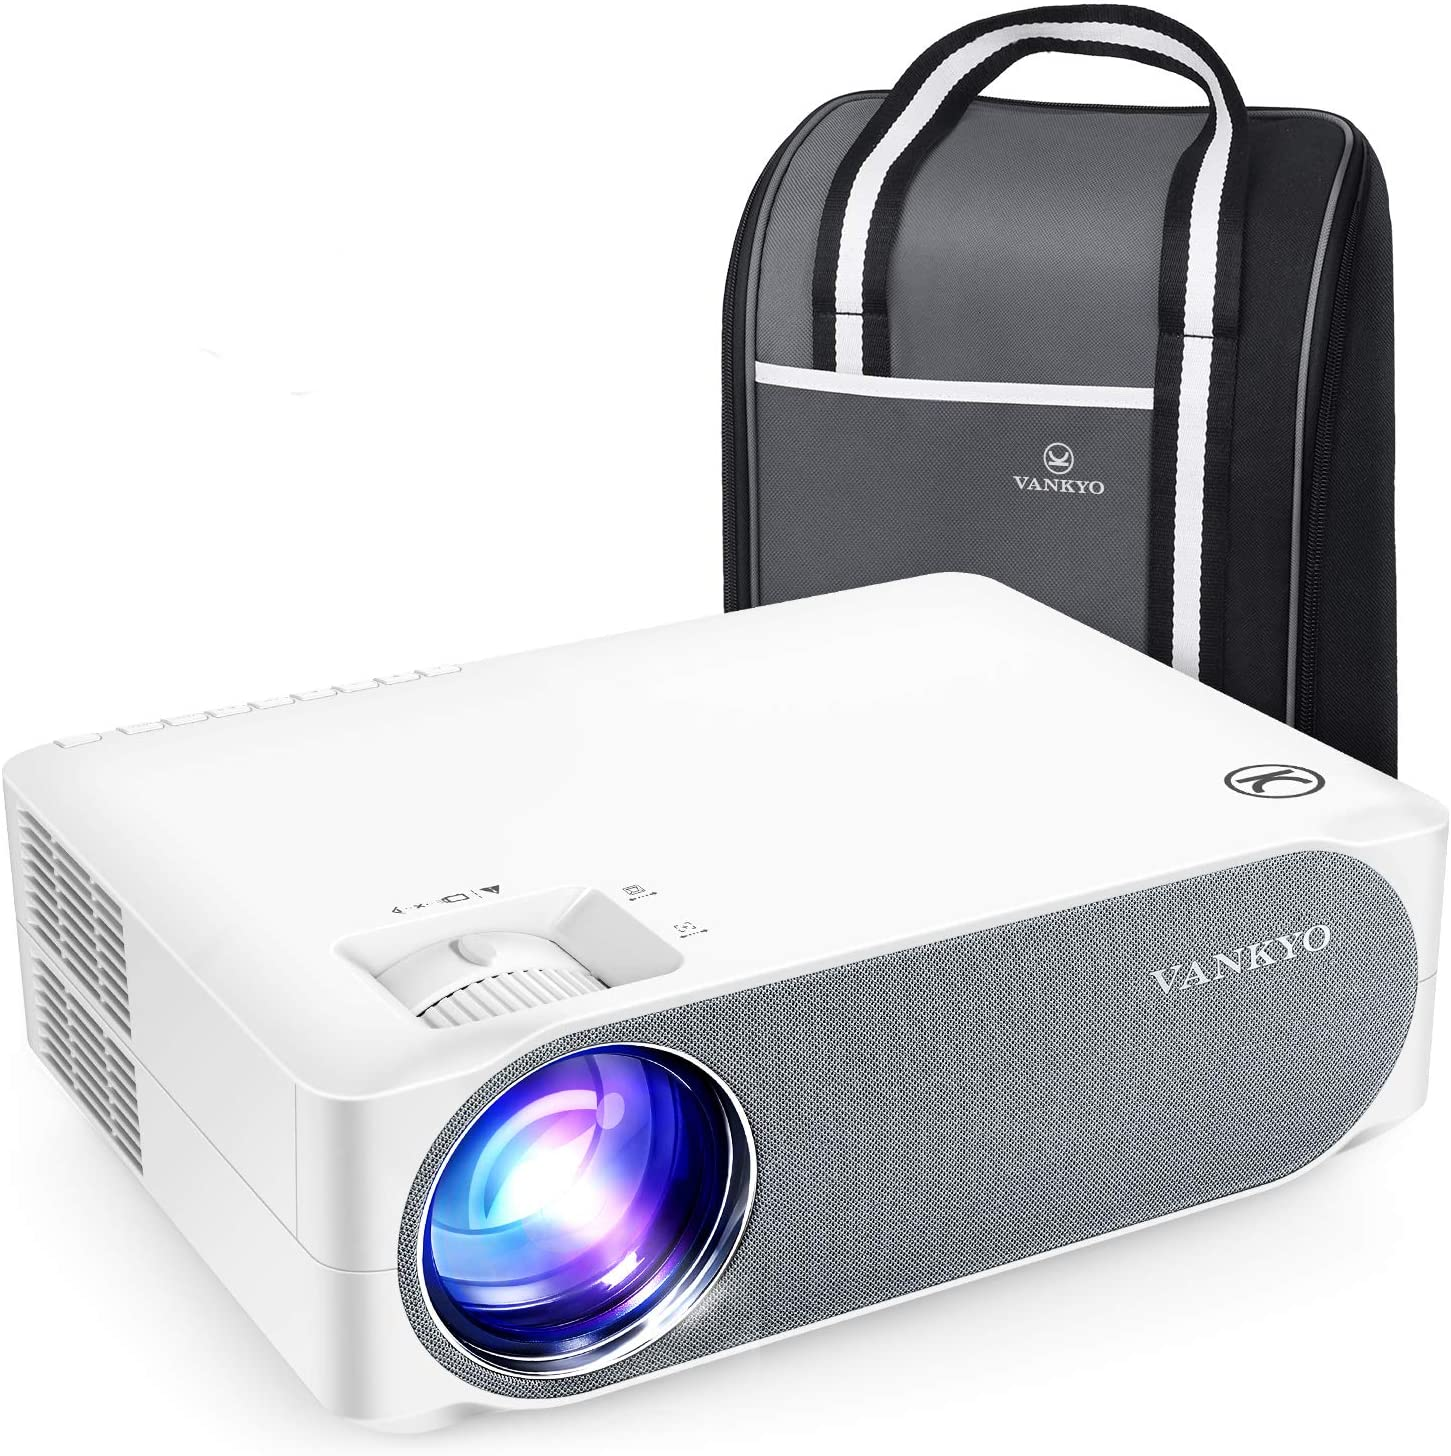 10 Best Projectors Under $500 to Buy in 2021 Recommended